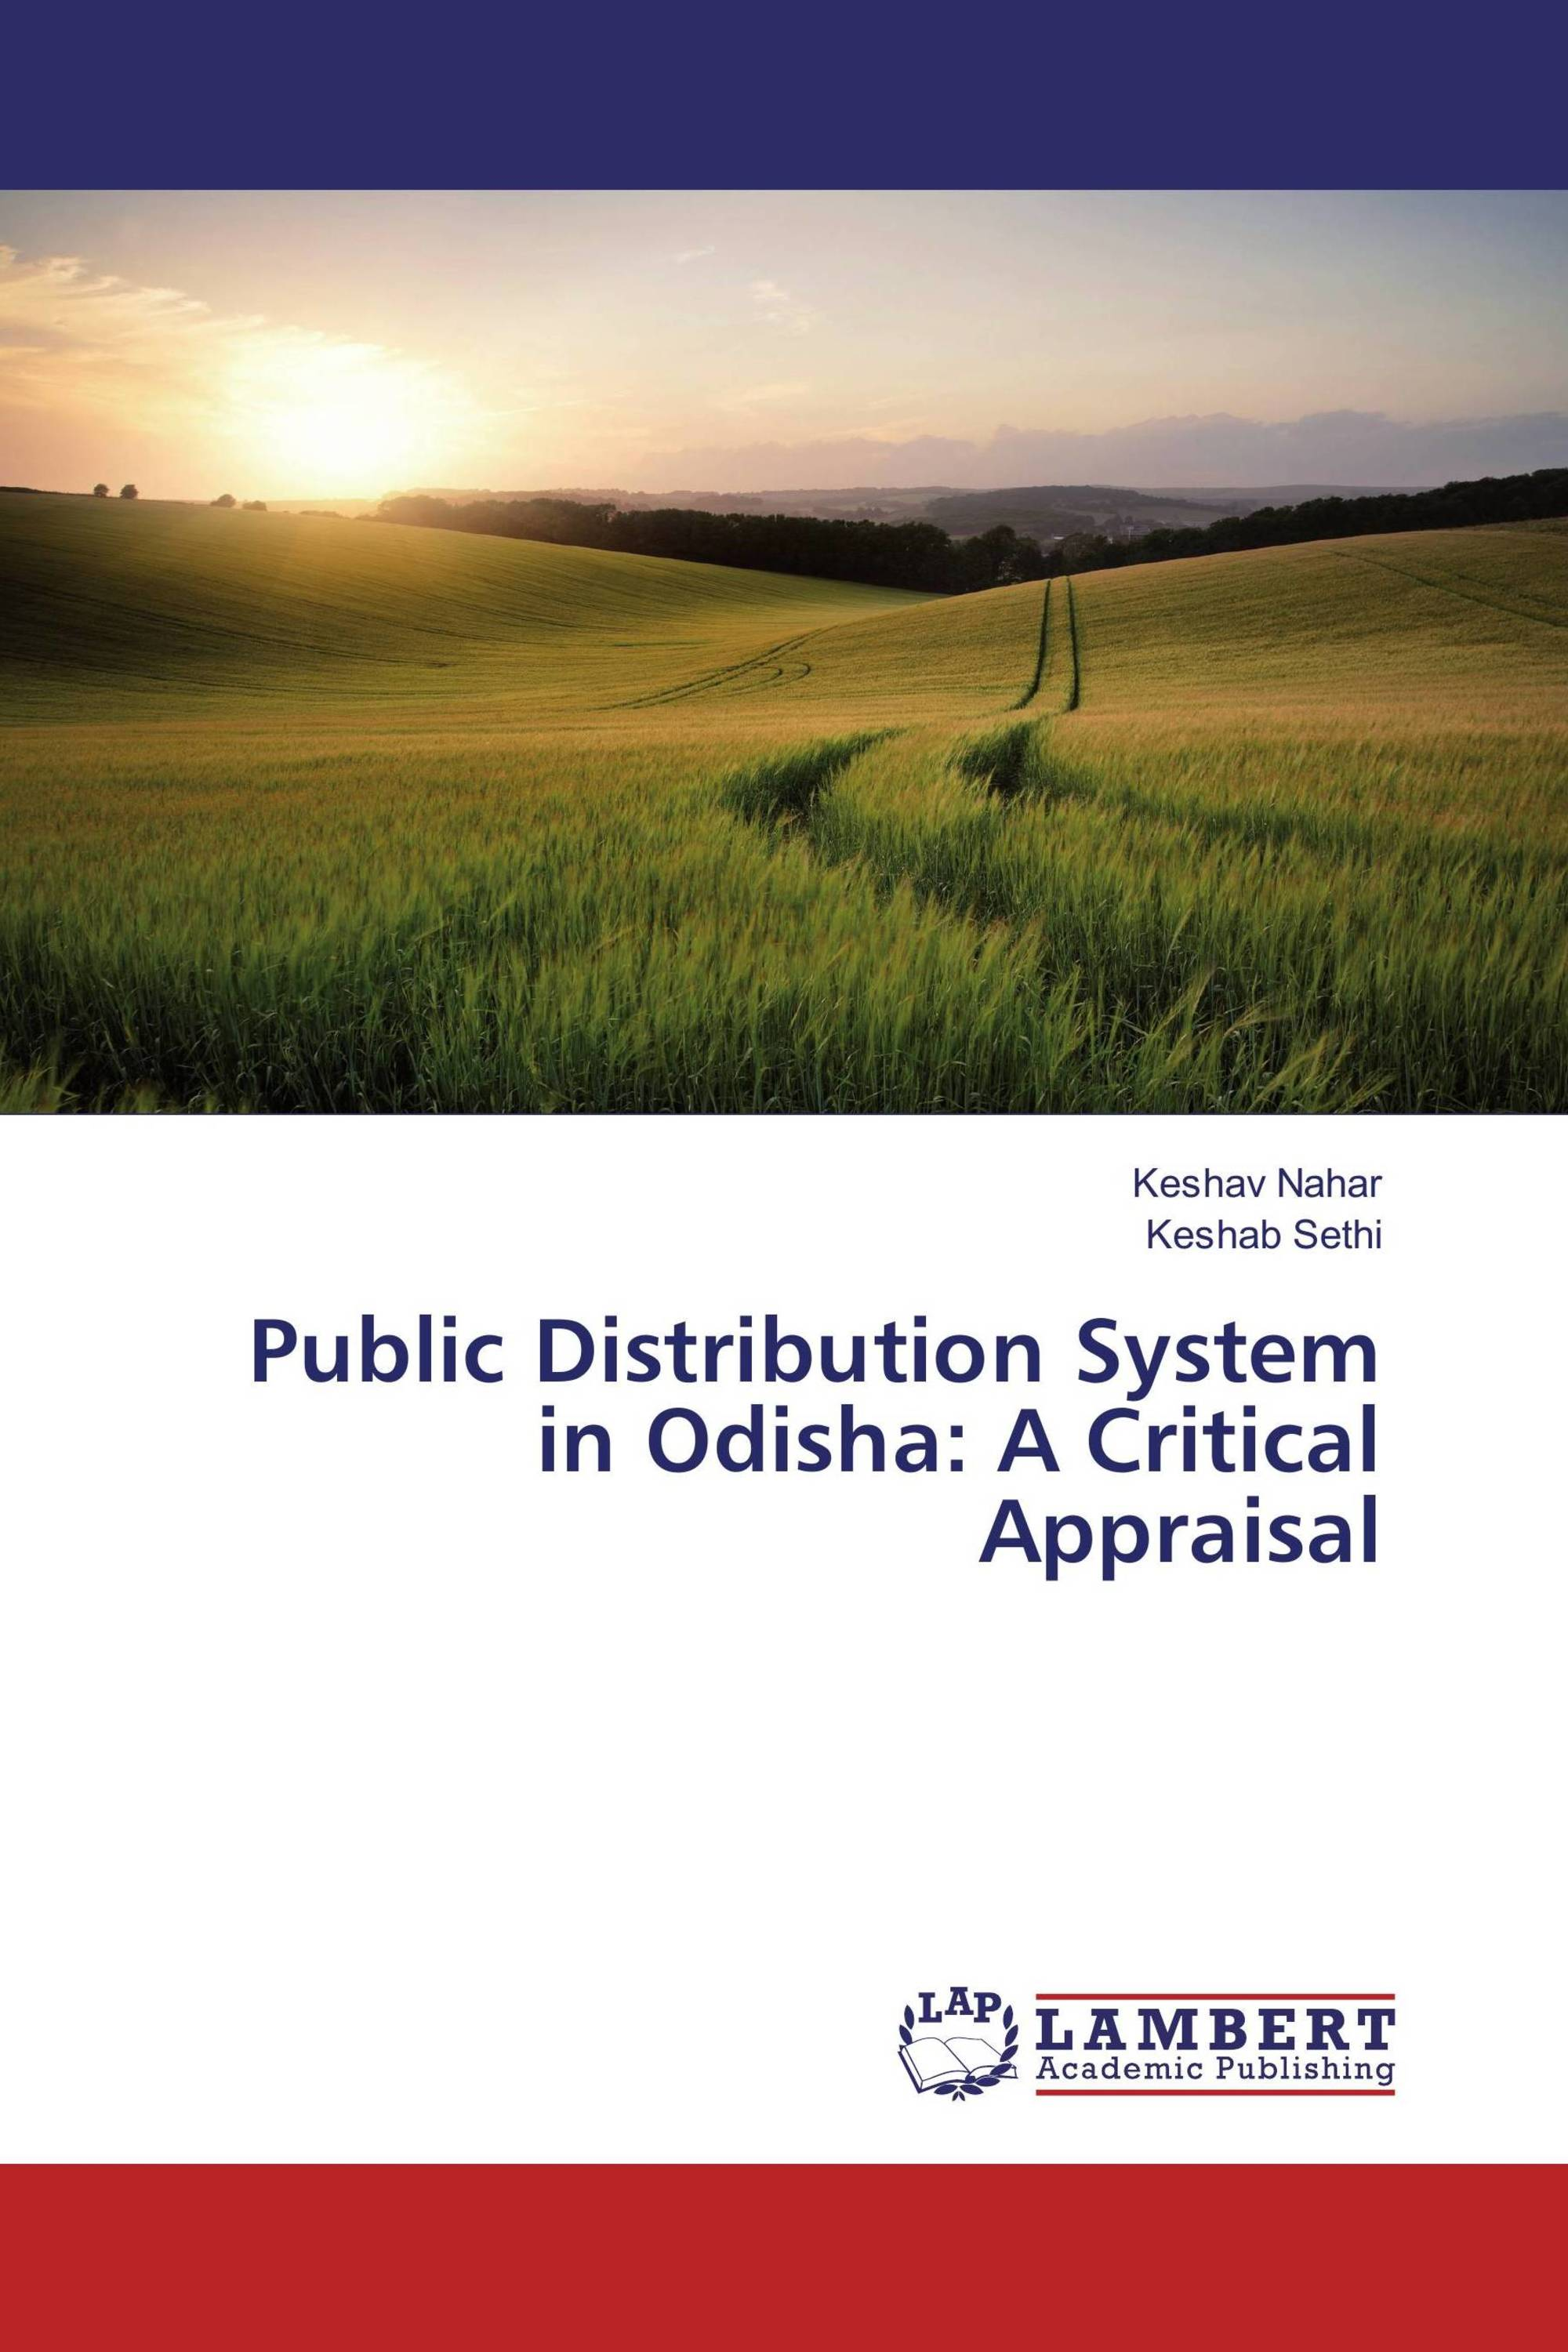 thesis on public distribution system Public distribution system on wn network delivers the latest videos and editable pages for news & events, including entertainment, music, sports, science and more, sign up and share your playlists public distribution system (pds) is an indian food security system.